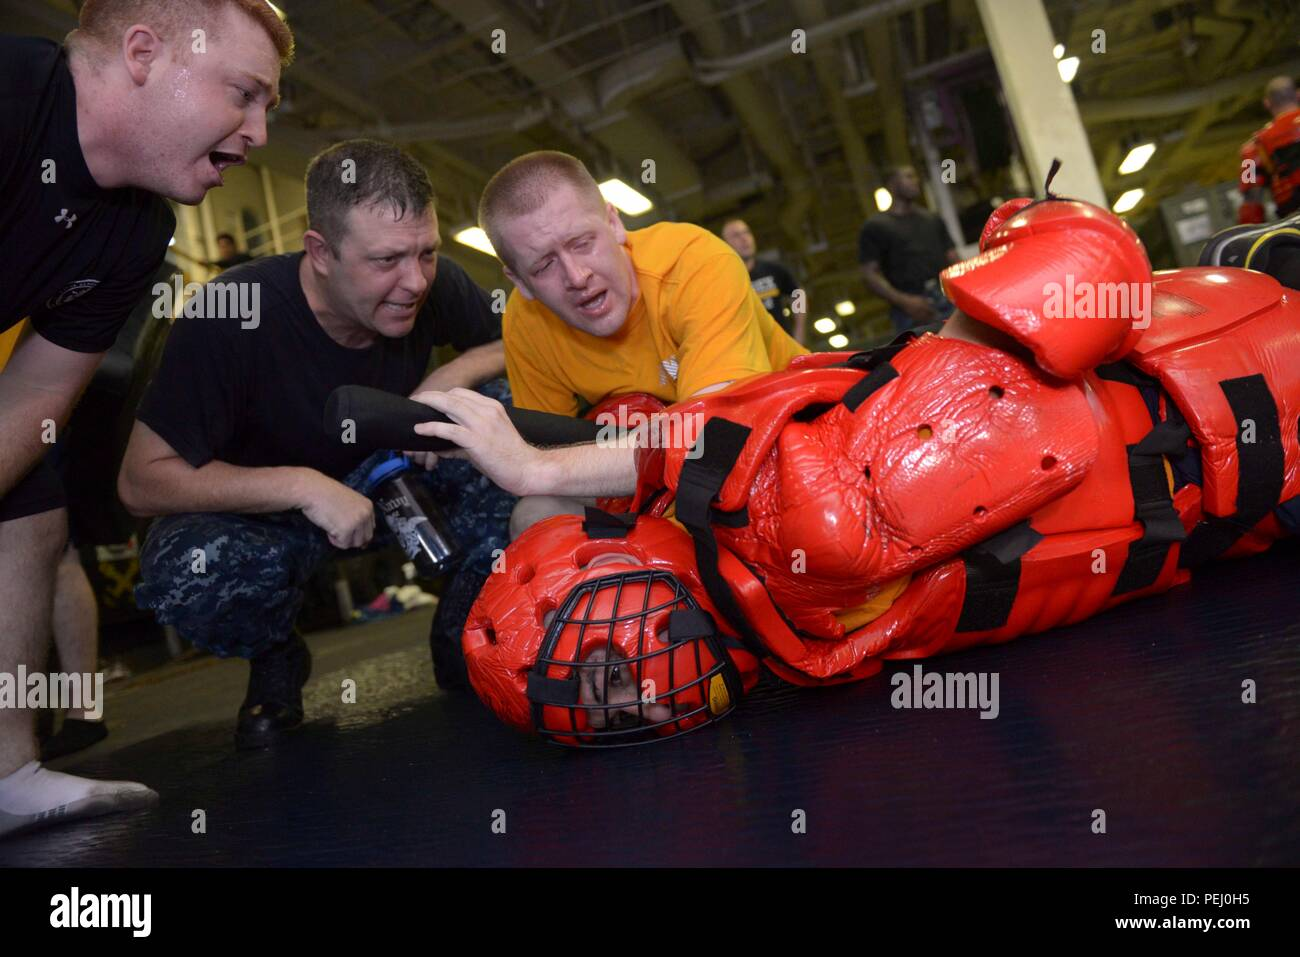 """ARABIAN GULF (Aug. 21, 2015) Legalman 1st Class John Detty uses a Mechanical Advantaged Control Hold (MACH) while under the effects of oleoresin capsicum spray to subdue the """"Redman"""" during a Security Reaction Force (SRF) training course in the upper vehicle storage of Wasp-class amphibious assault ship USS Essex (LHD 2). Essex is the flagship of the Essex Amphibious Ready Group (ARG) and, with the embarked 15th Marine Expeditionary Unit (MEU), is deployed in support of maritime security operations and theater security cooperation efforts in the U.S. 5th Fleet area of operations. (U.S. Navy ph - Stock Image"""